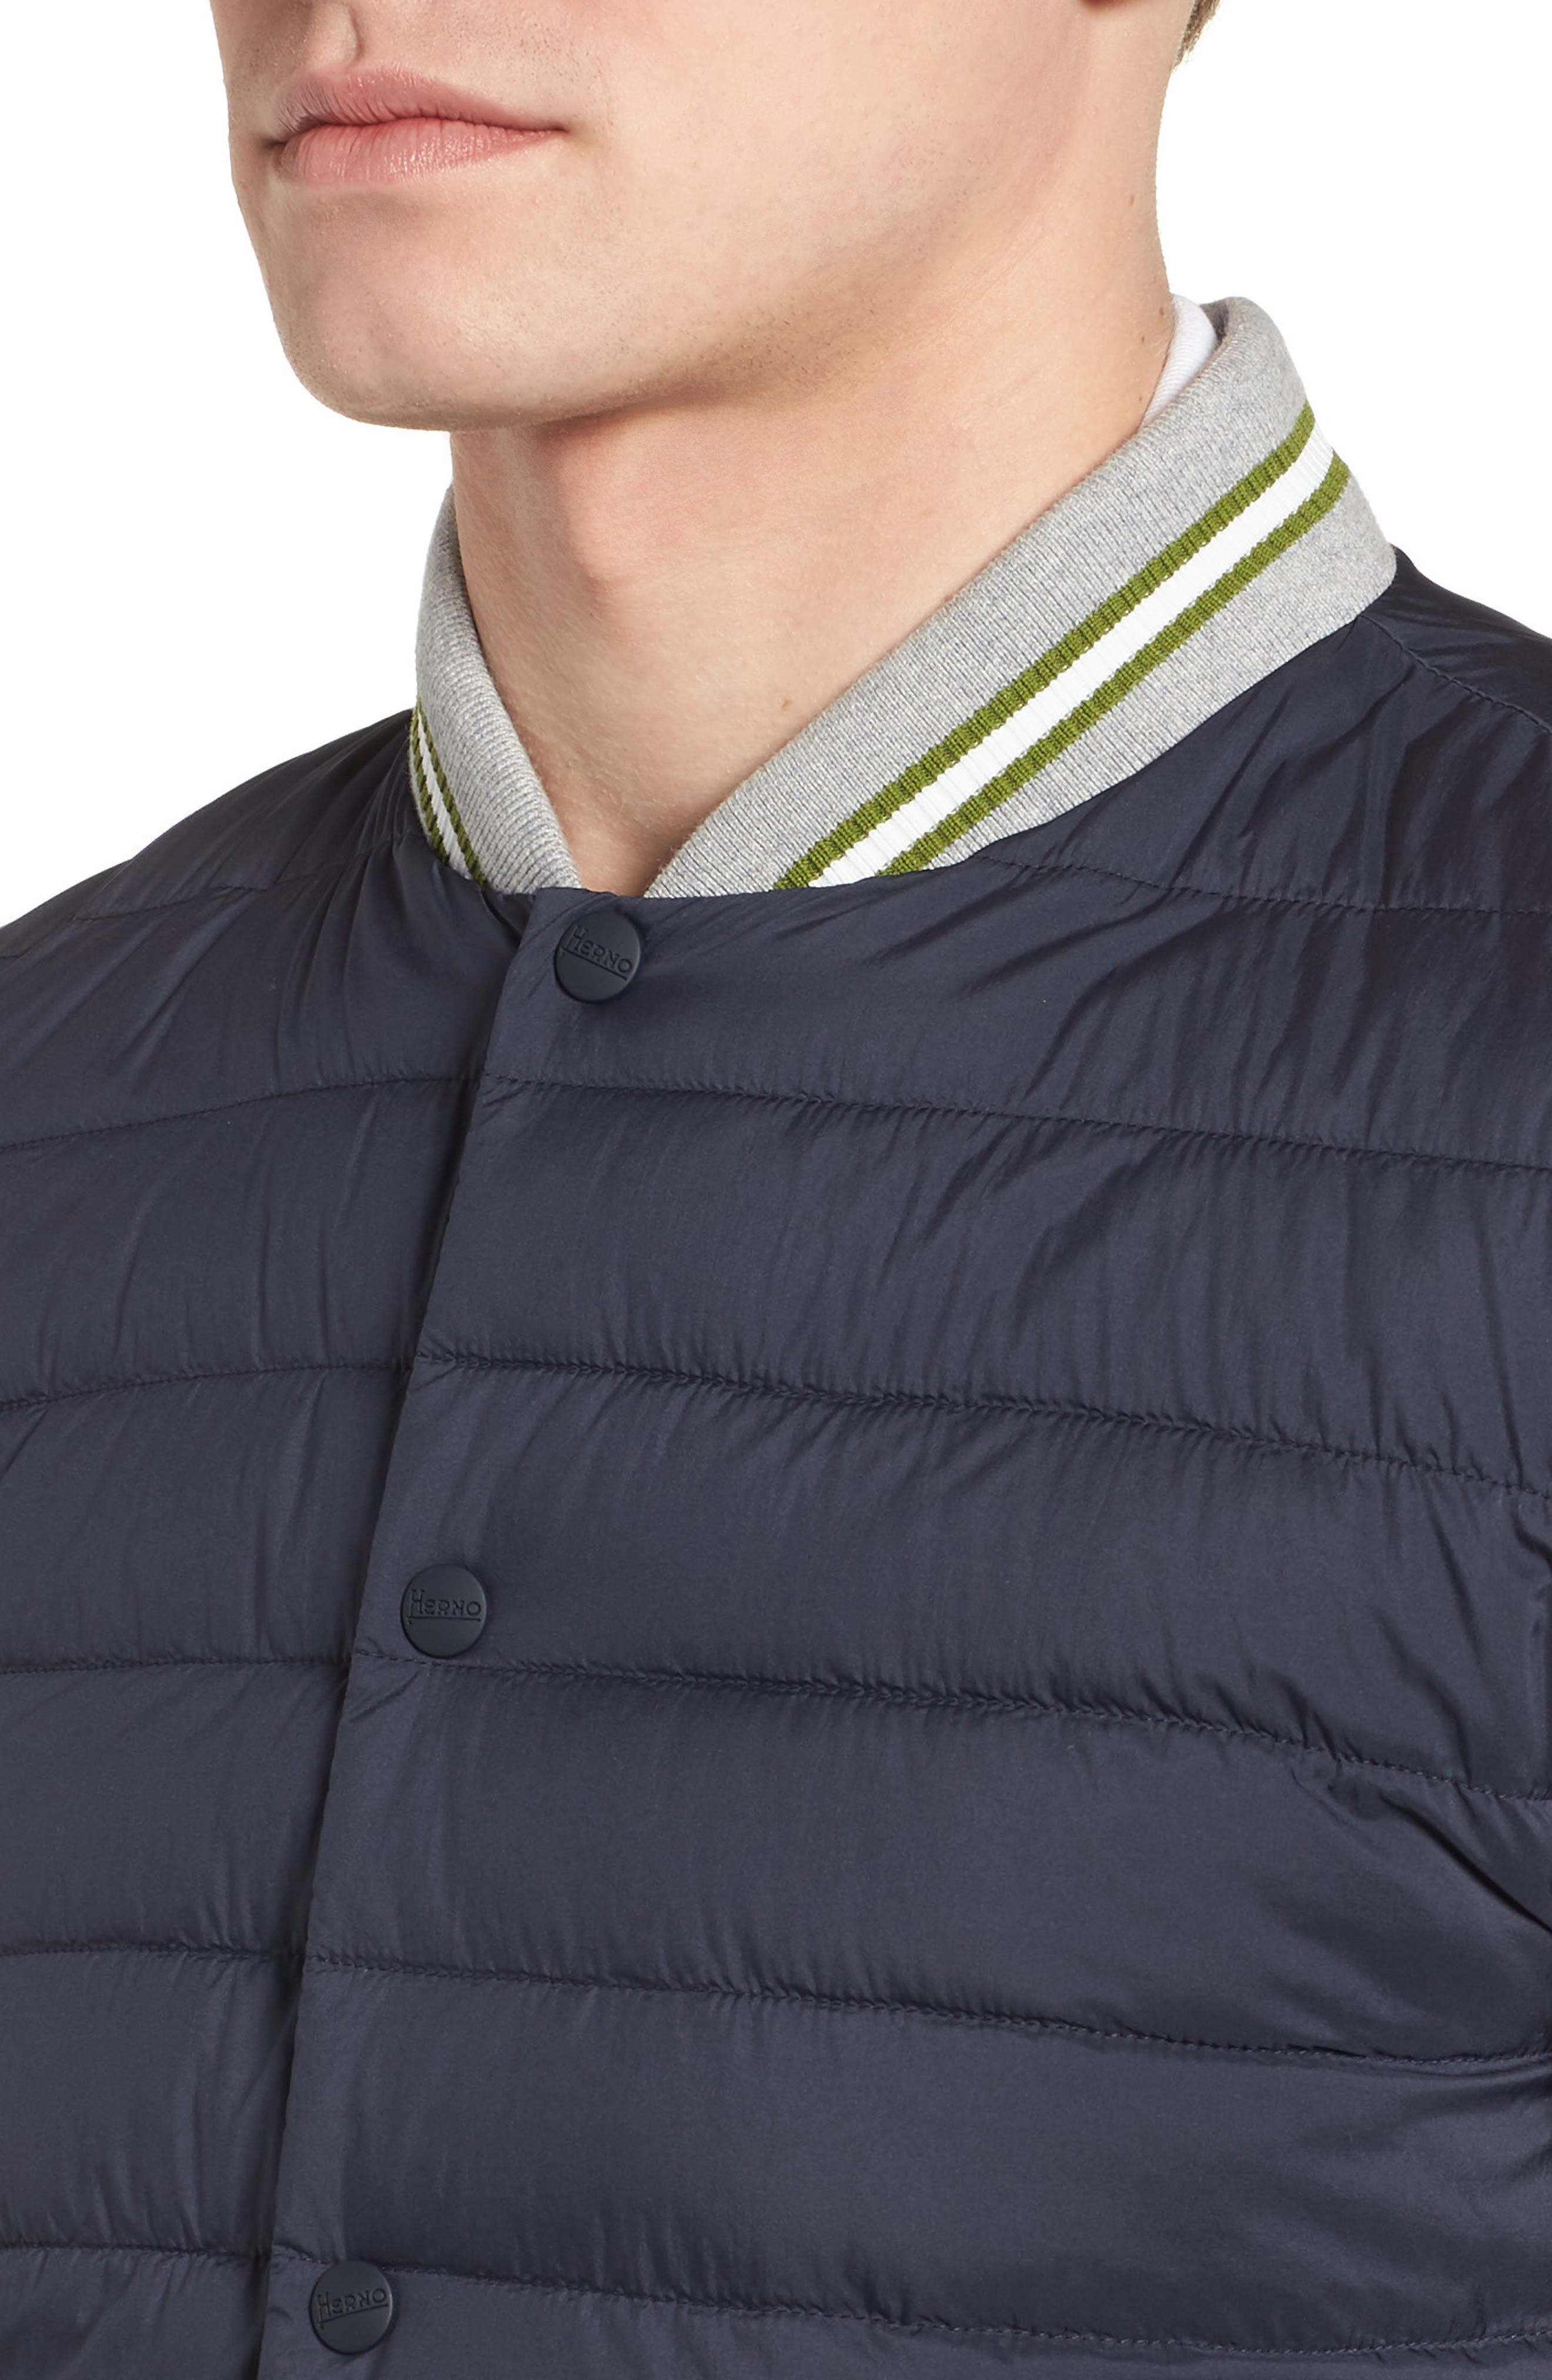 Quilted Baseball Jacket,                             Alternate thumbnail 4, color,                             Navy